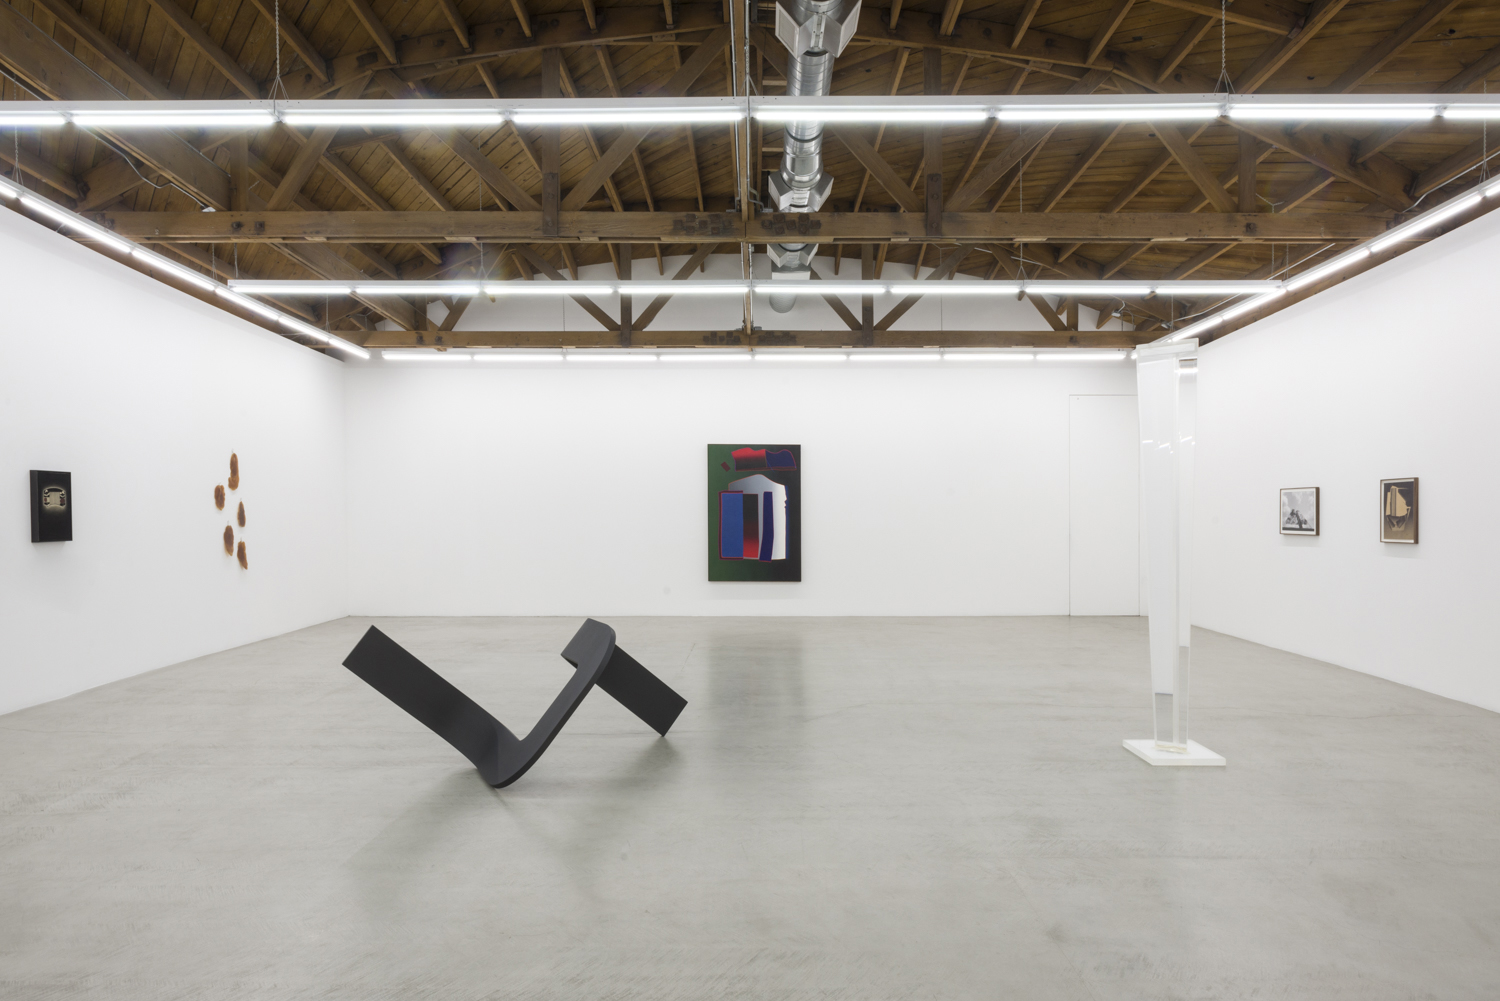 Installation View of Dilexi Totems and Phenomenology